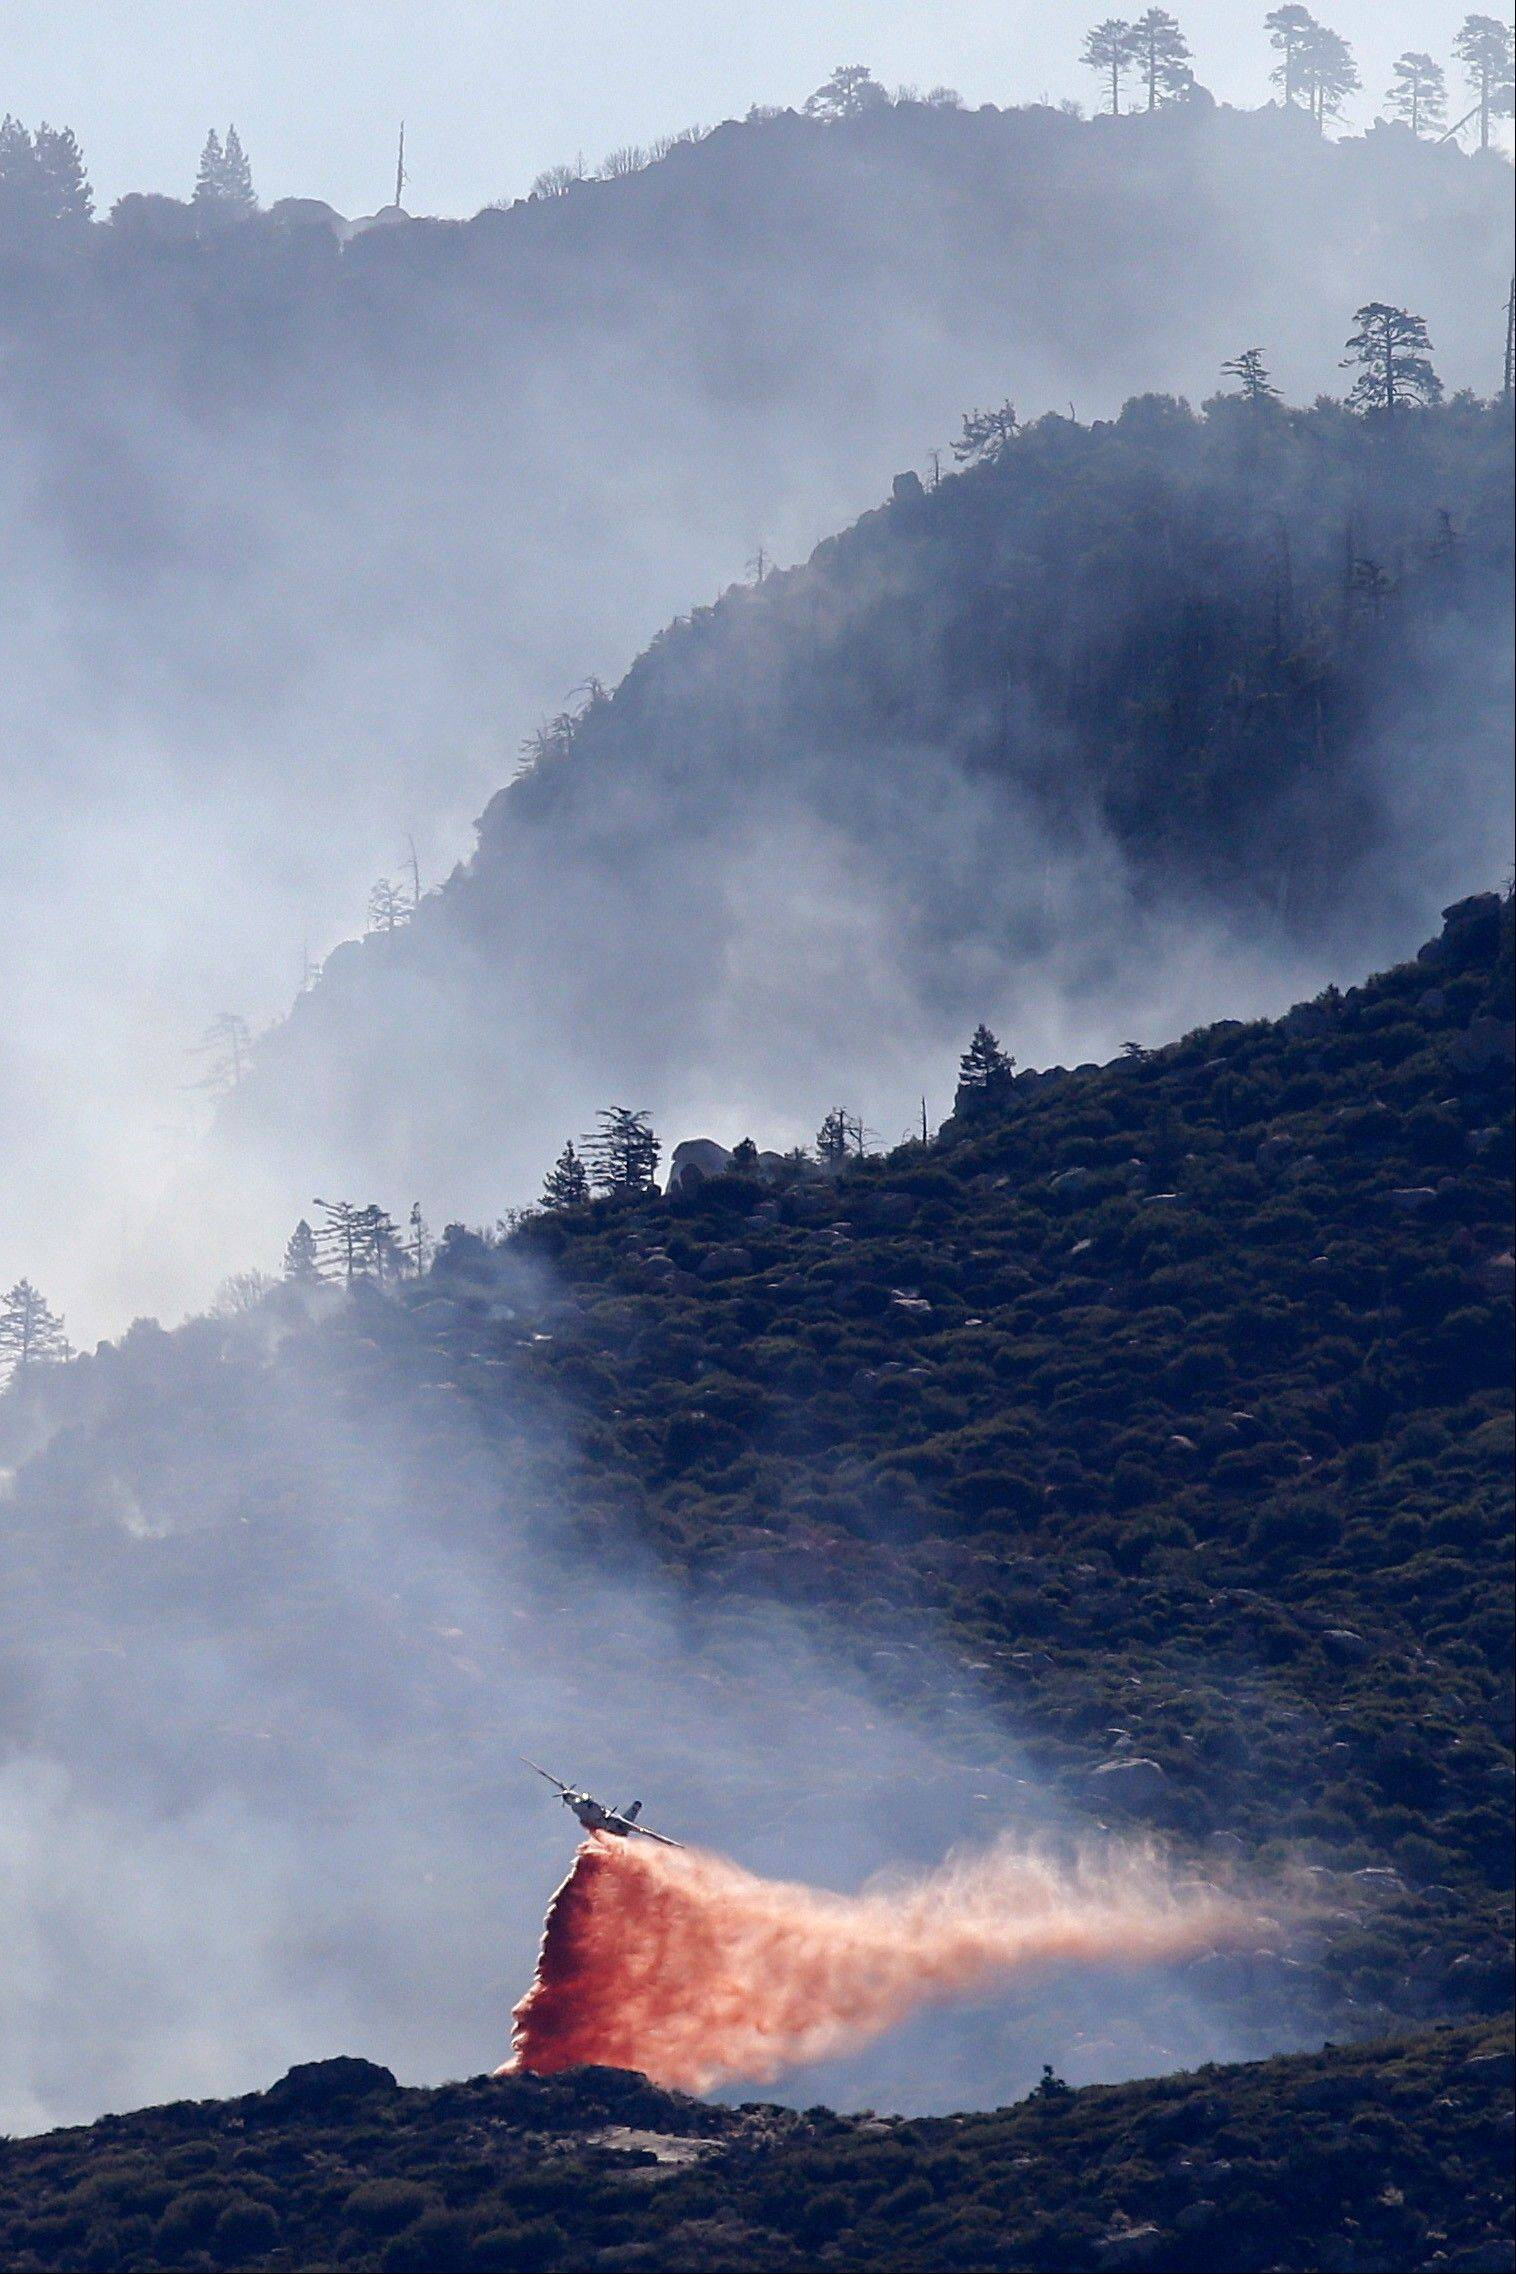 An air tanker drops fire retardant on a hot spot Friday as firefighters continue to battle a wildfire near Banning, Calif.